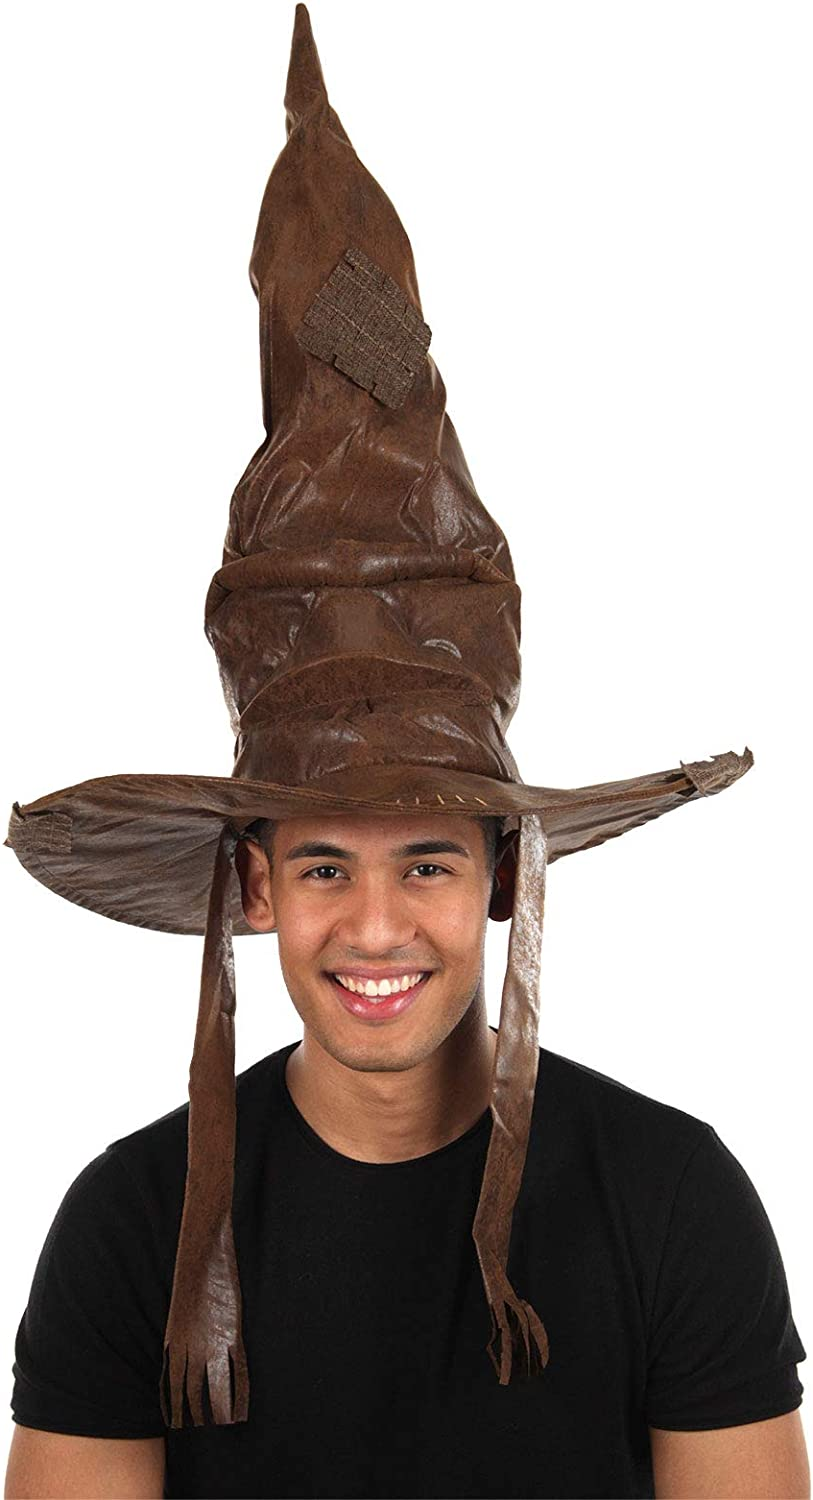 Harry Potter Deluxe Sorting Hat adults kids cosplay costume accessory